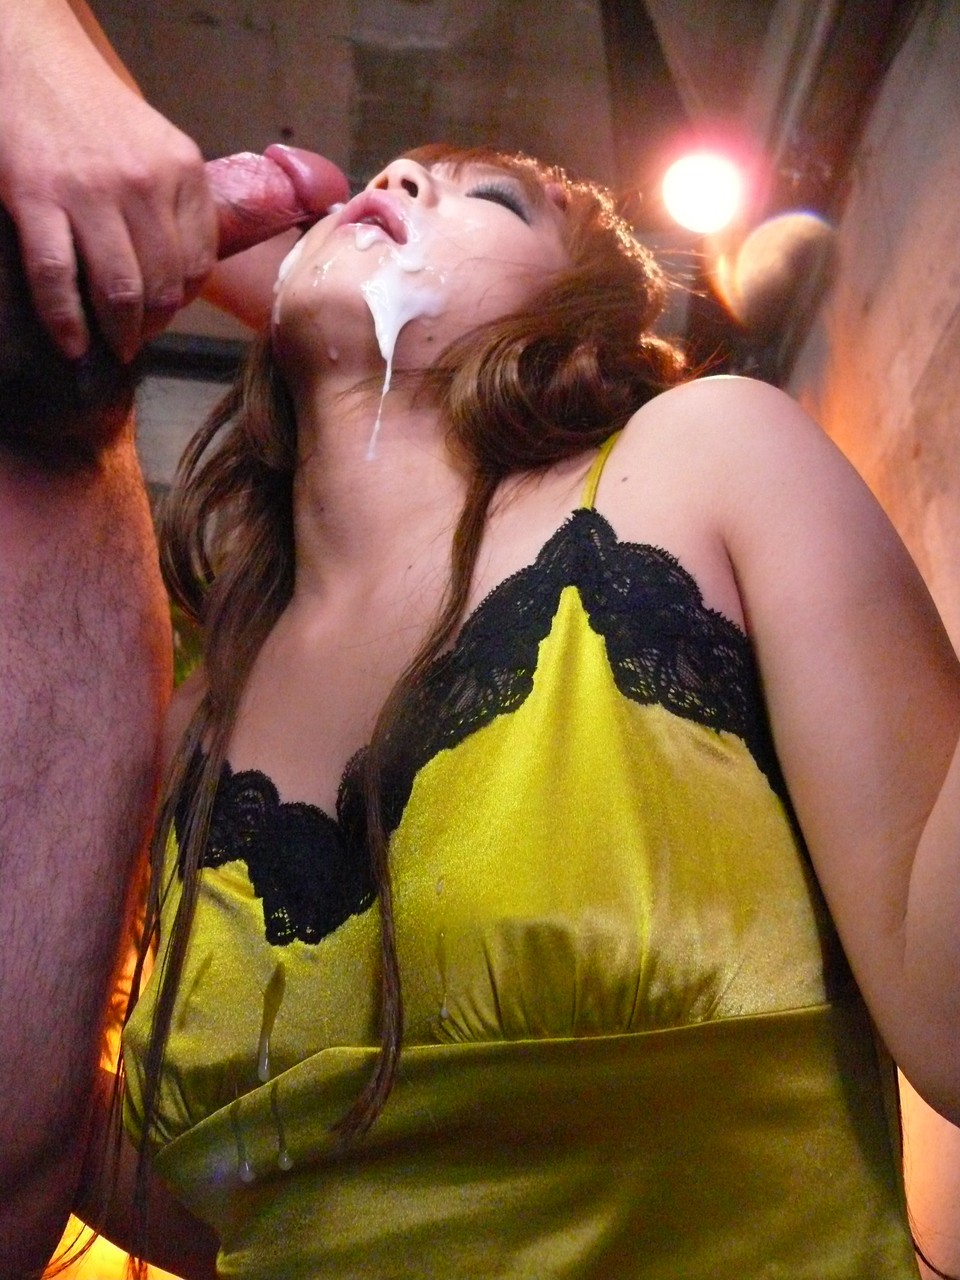 Japanese female Mizuki Ishikawa gets a facial cumshot from 2 guys ポルノ写真 #422411953 | Japan HD XXX, MIZUKI ISHIKAWA,, モバイルポルノ